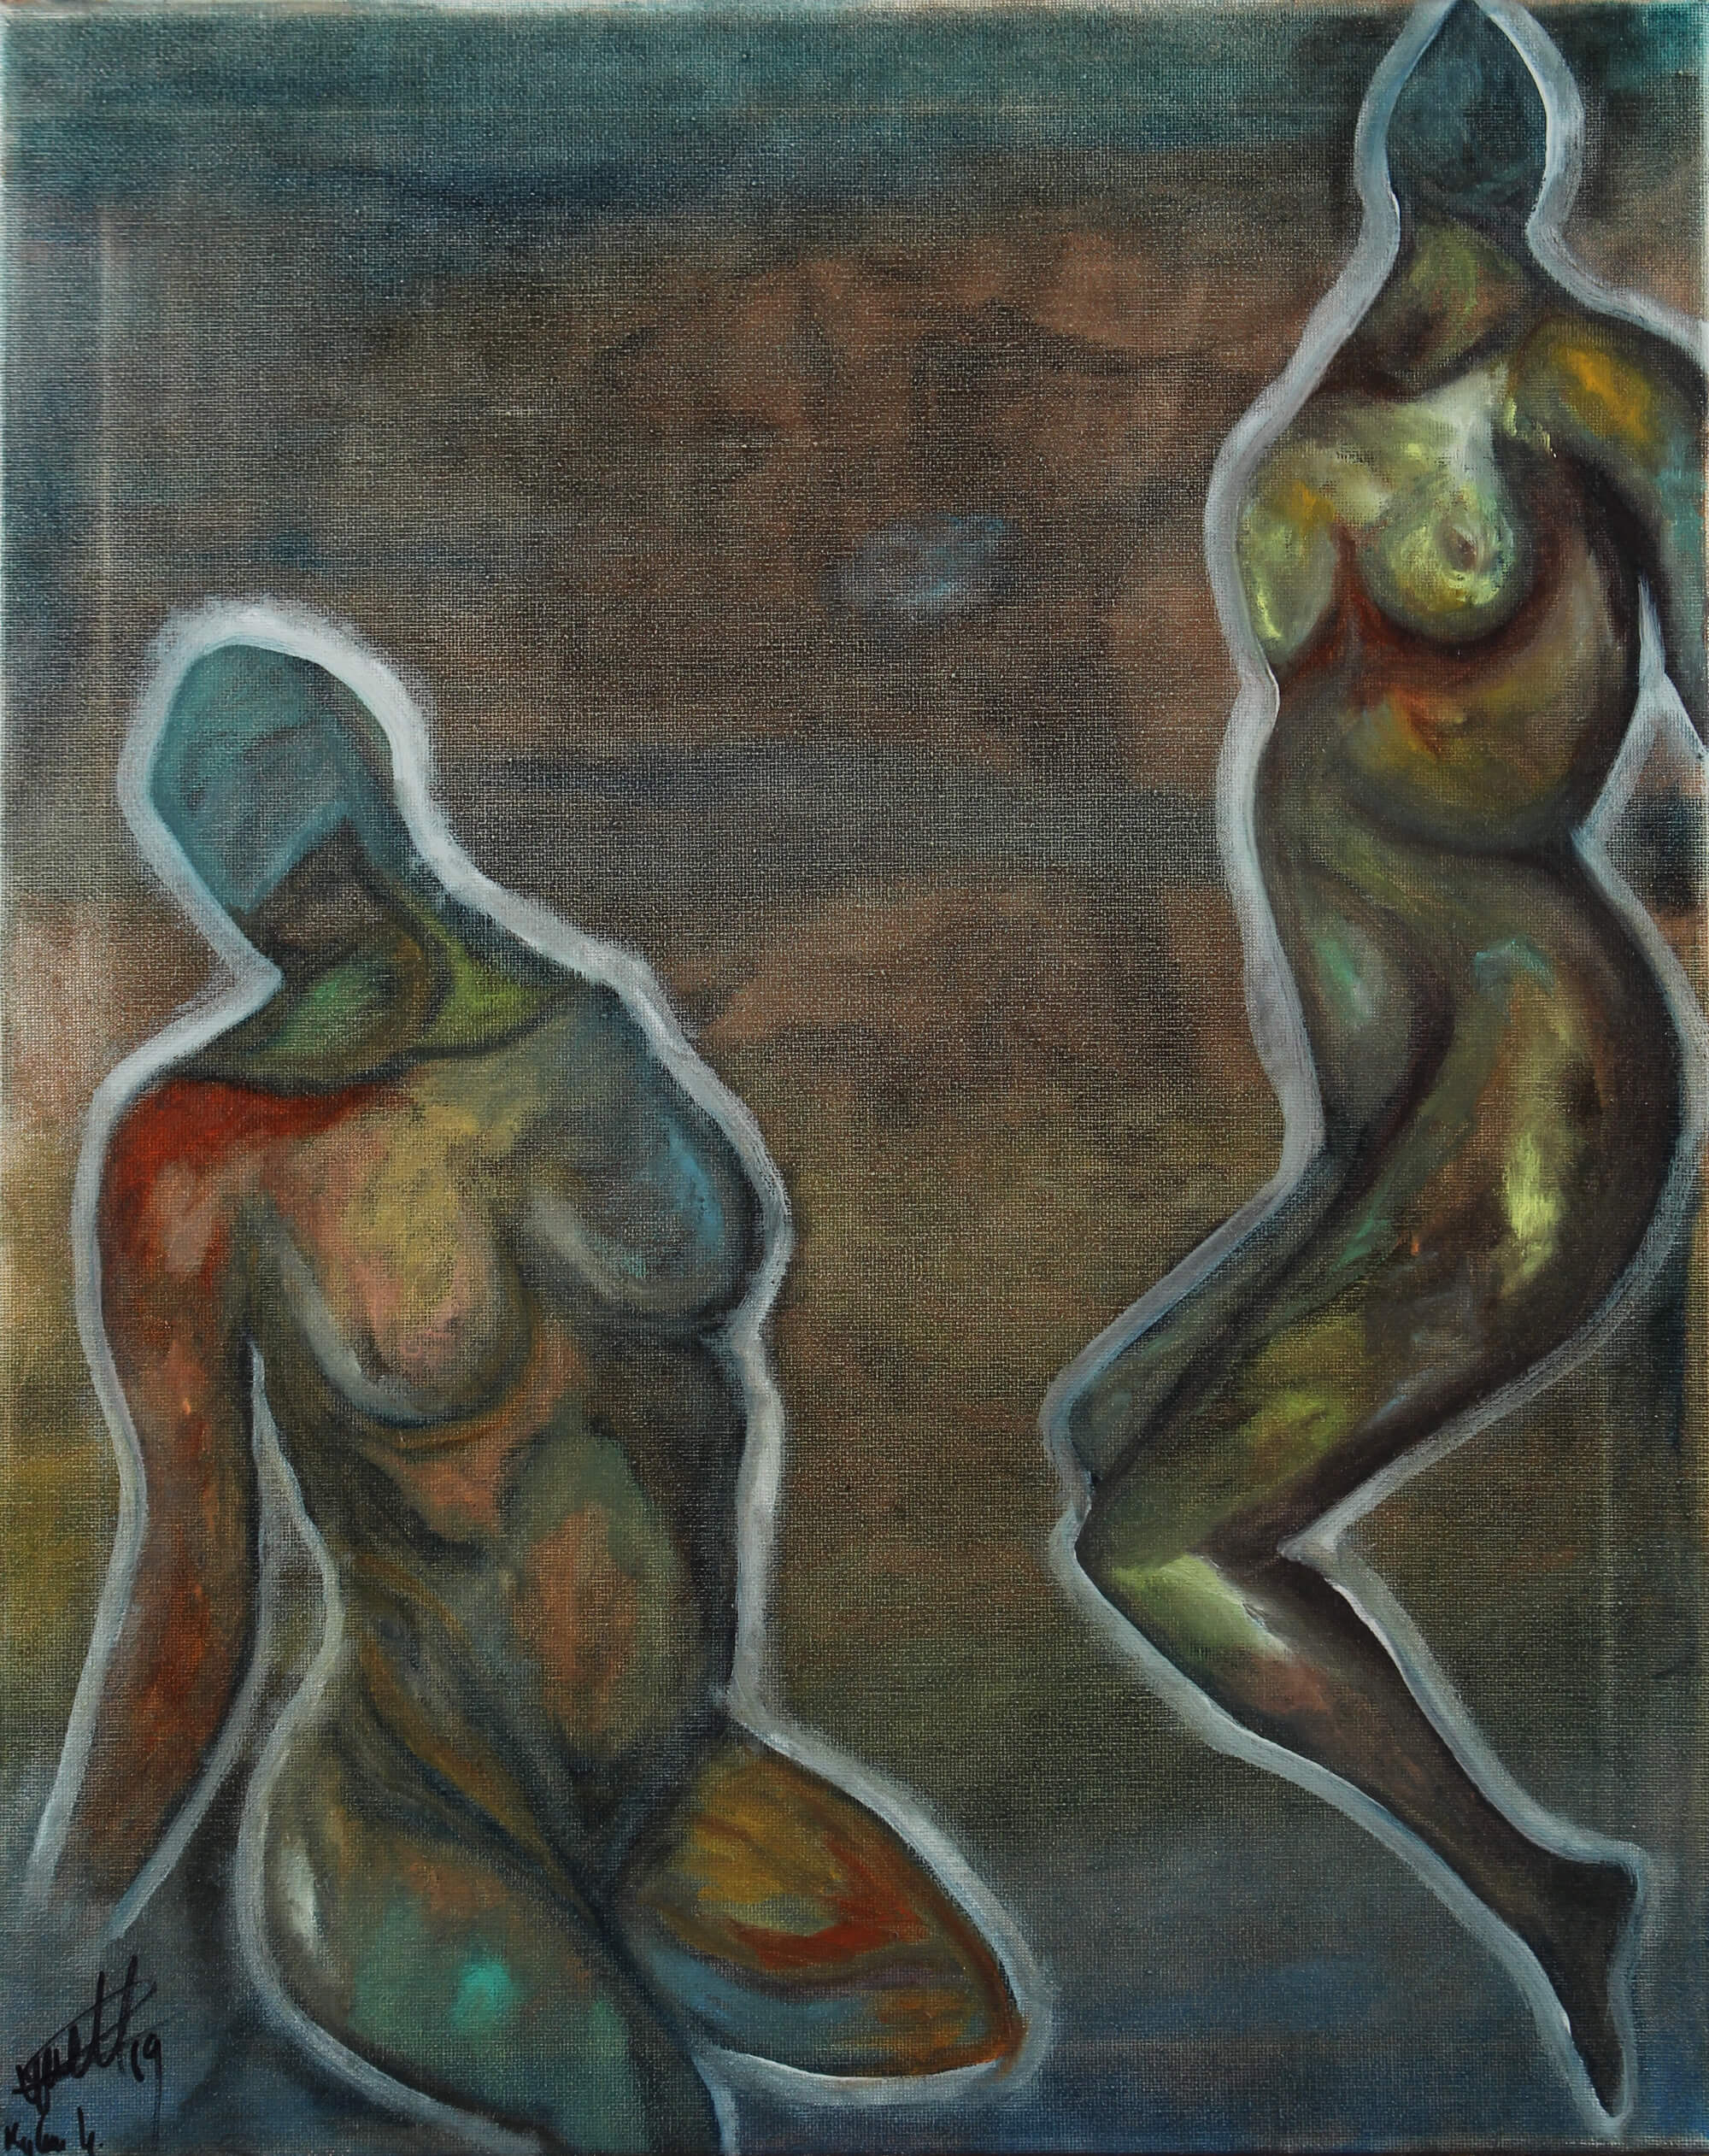 Oil painting of two non-interacting ambiguous human figures in a dark scenery by Kyhan Yael